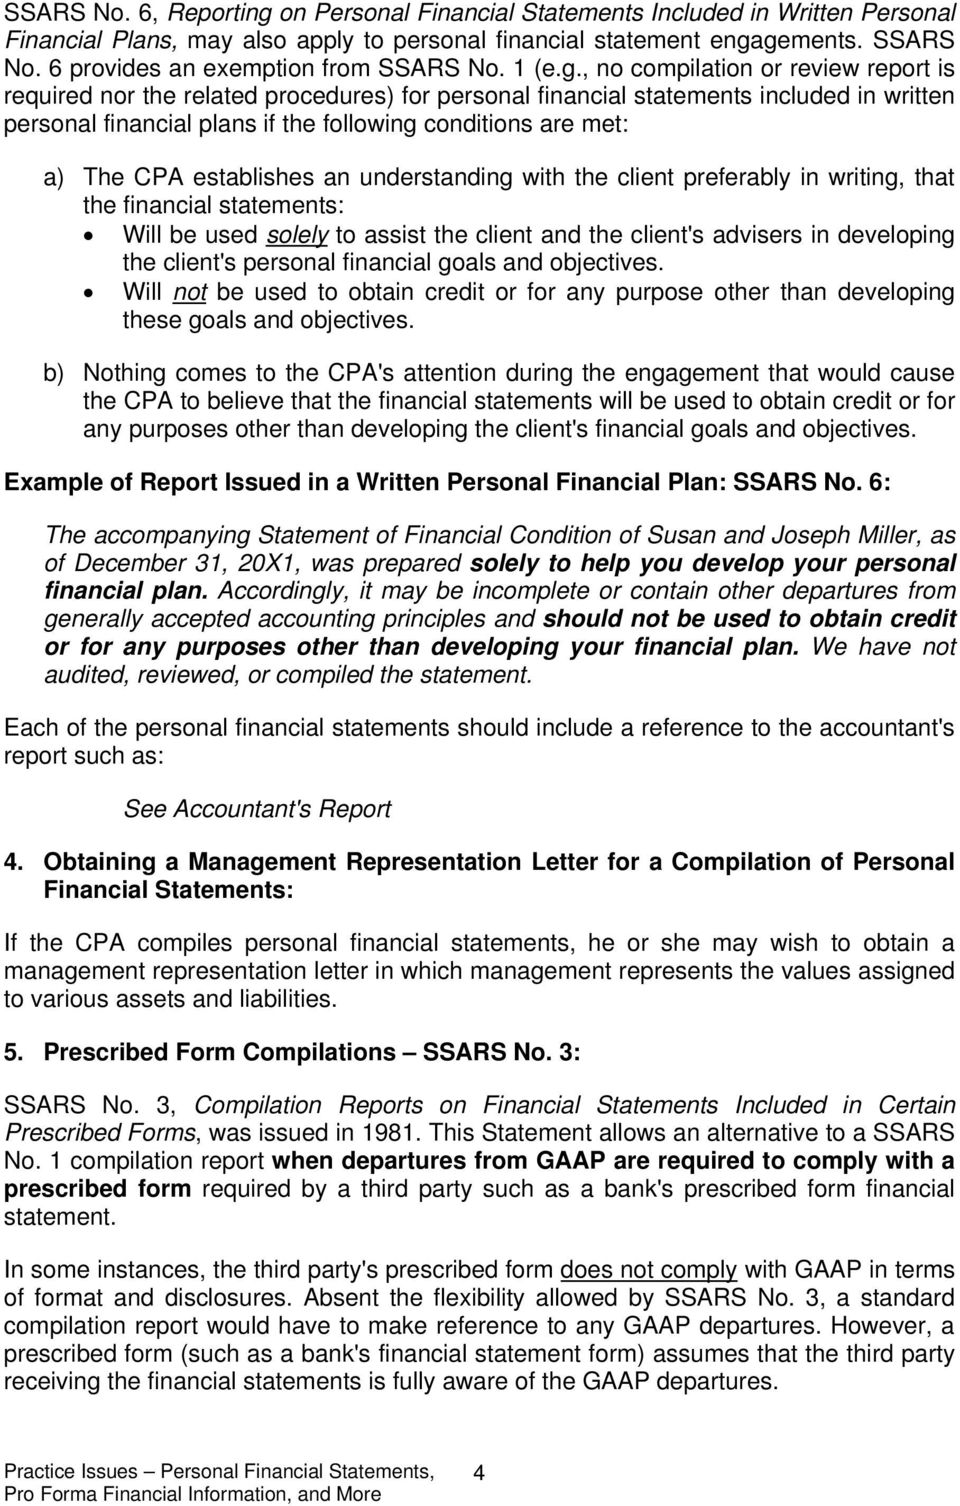 pro forma financial statements are used for padd financial